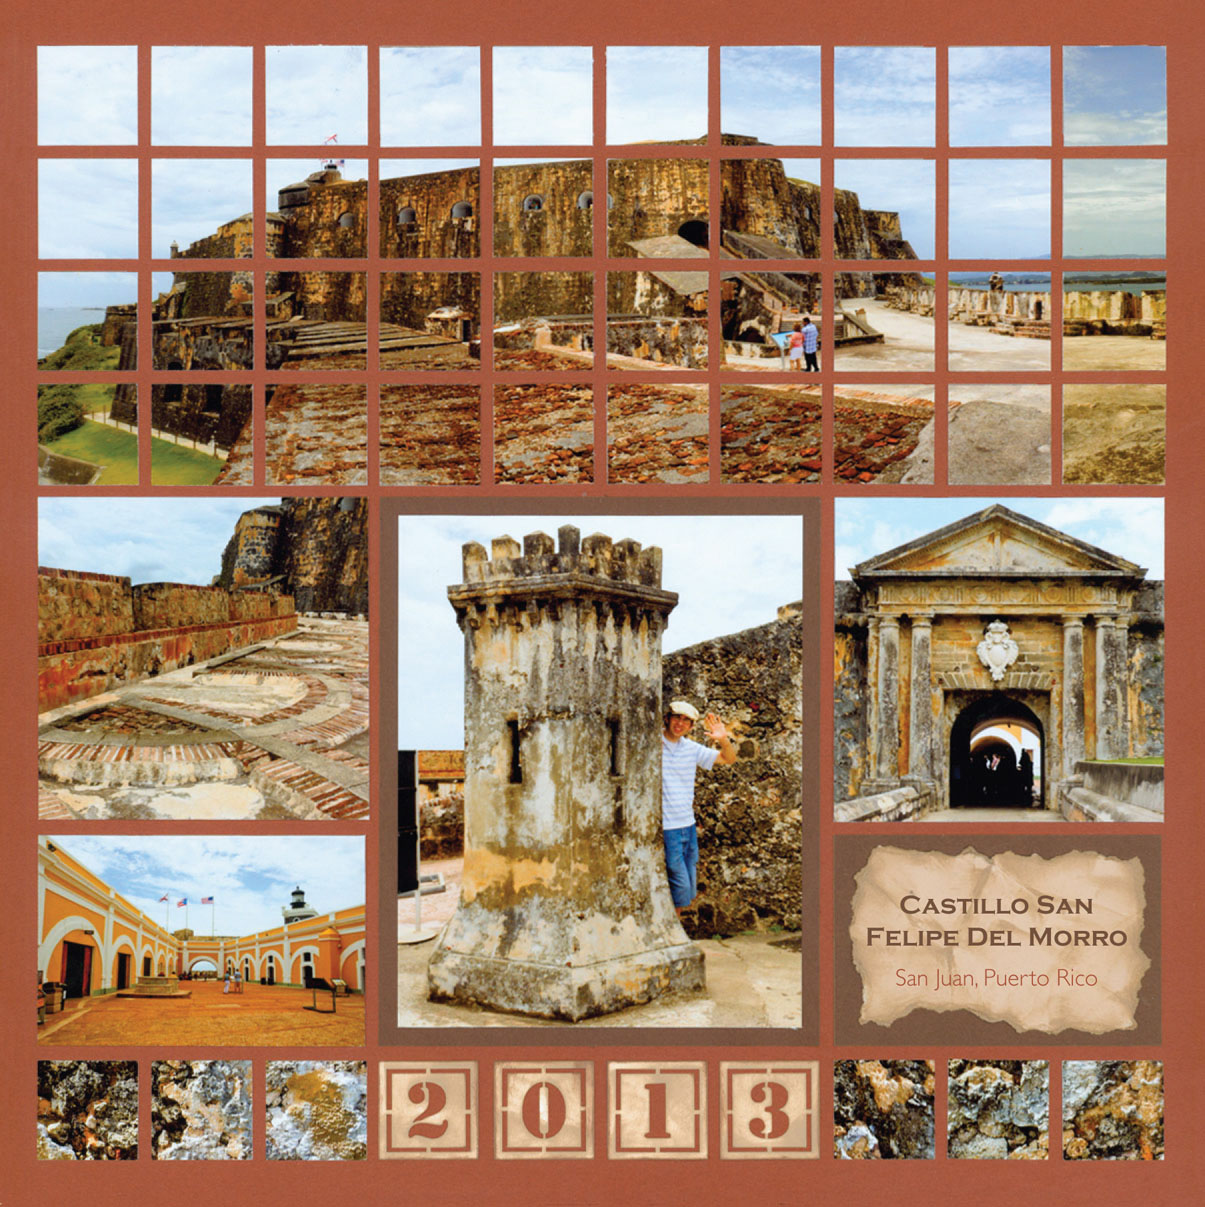 Juliet scrapbook ideas - Top 3 Vacation Photos You Should Be Taking